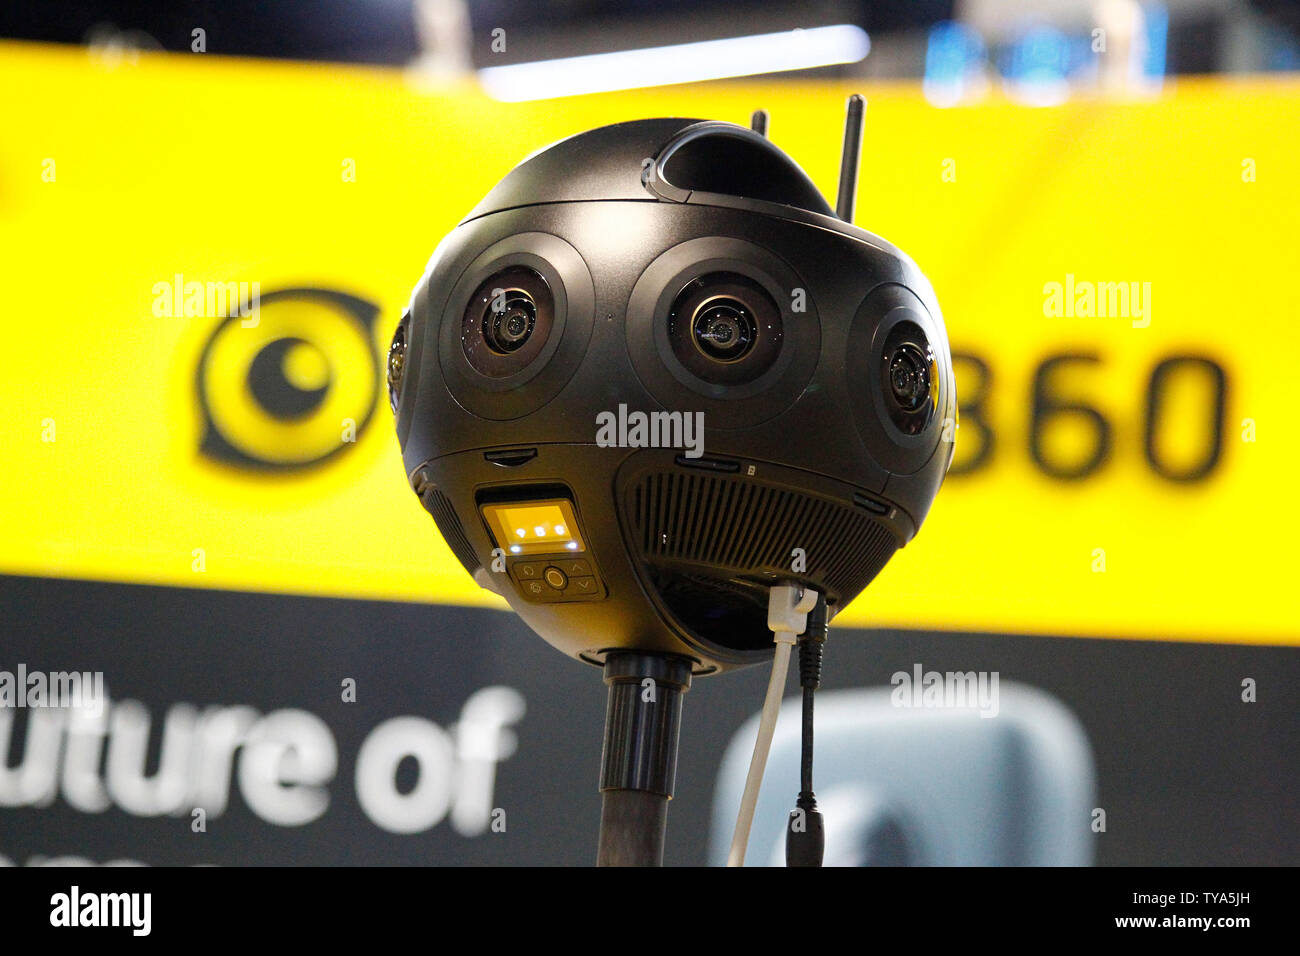 A close up of the new Insta360 Titan Virtual Reality 360